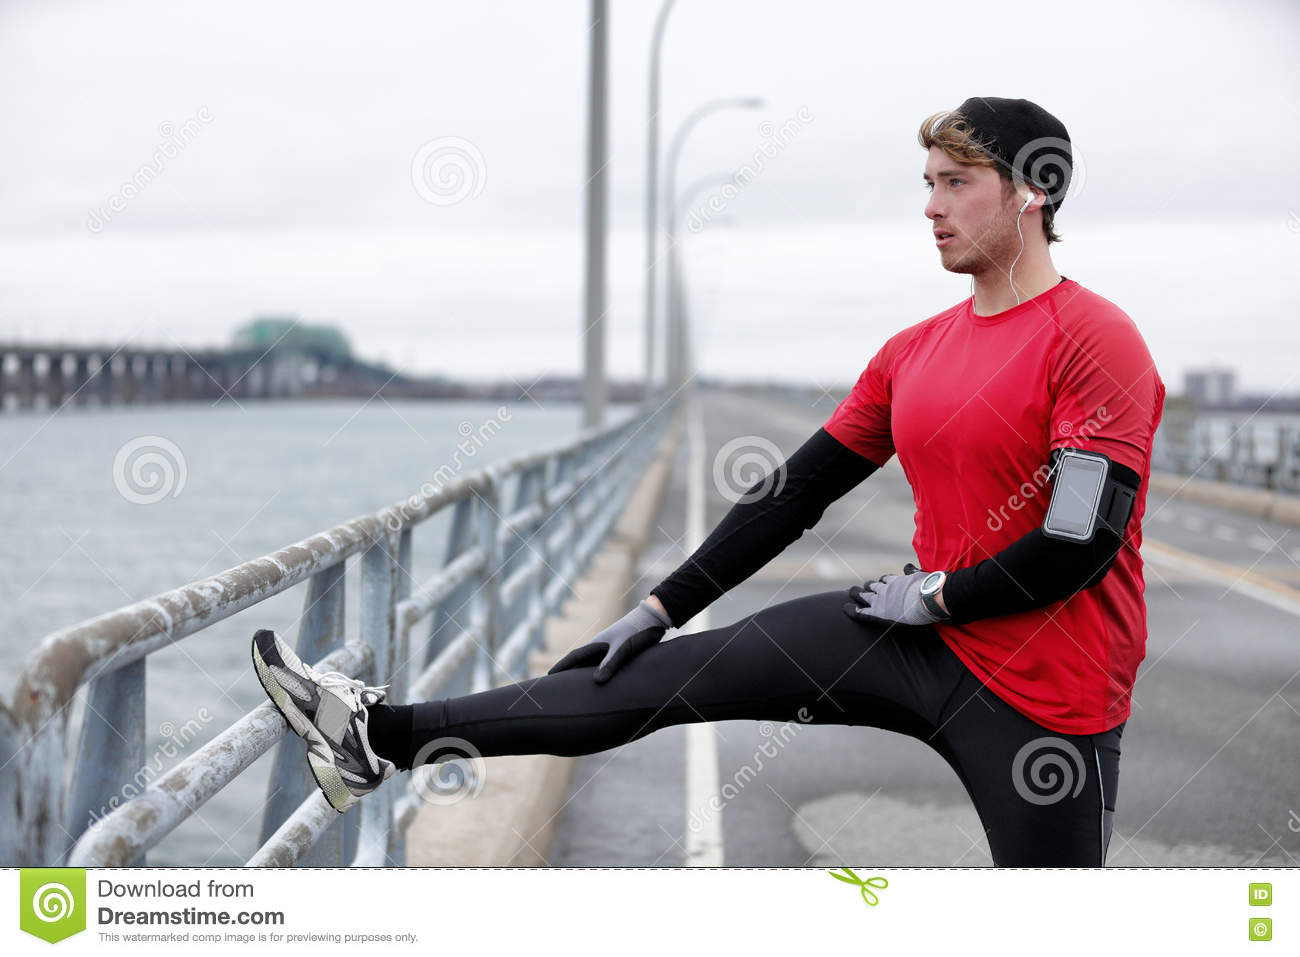 Winter fitness running man warm-up stretching legs